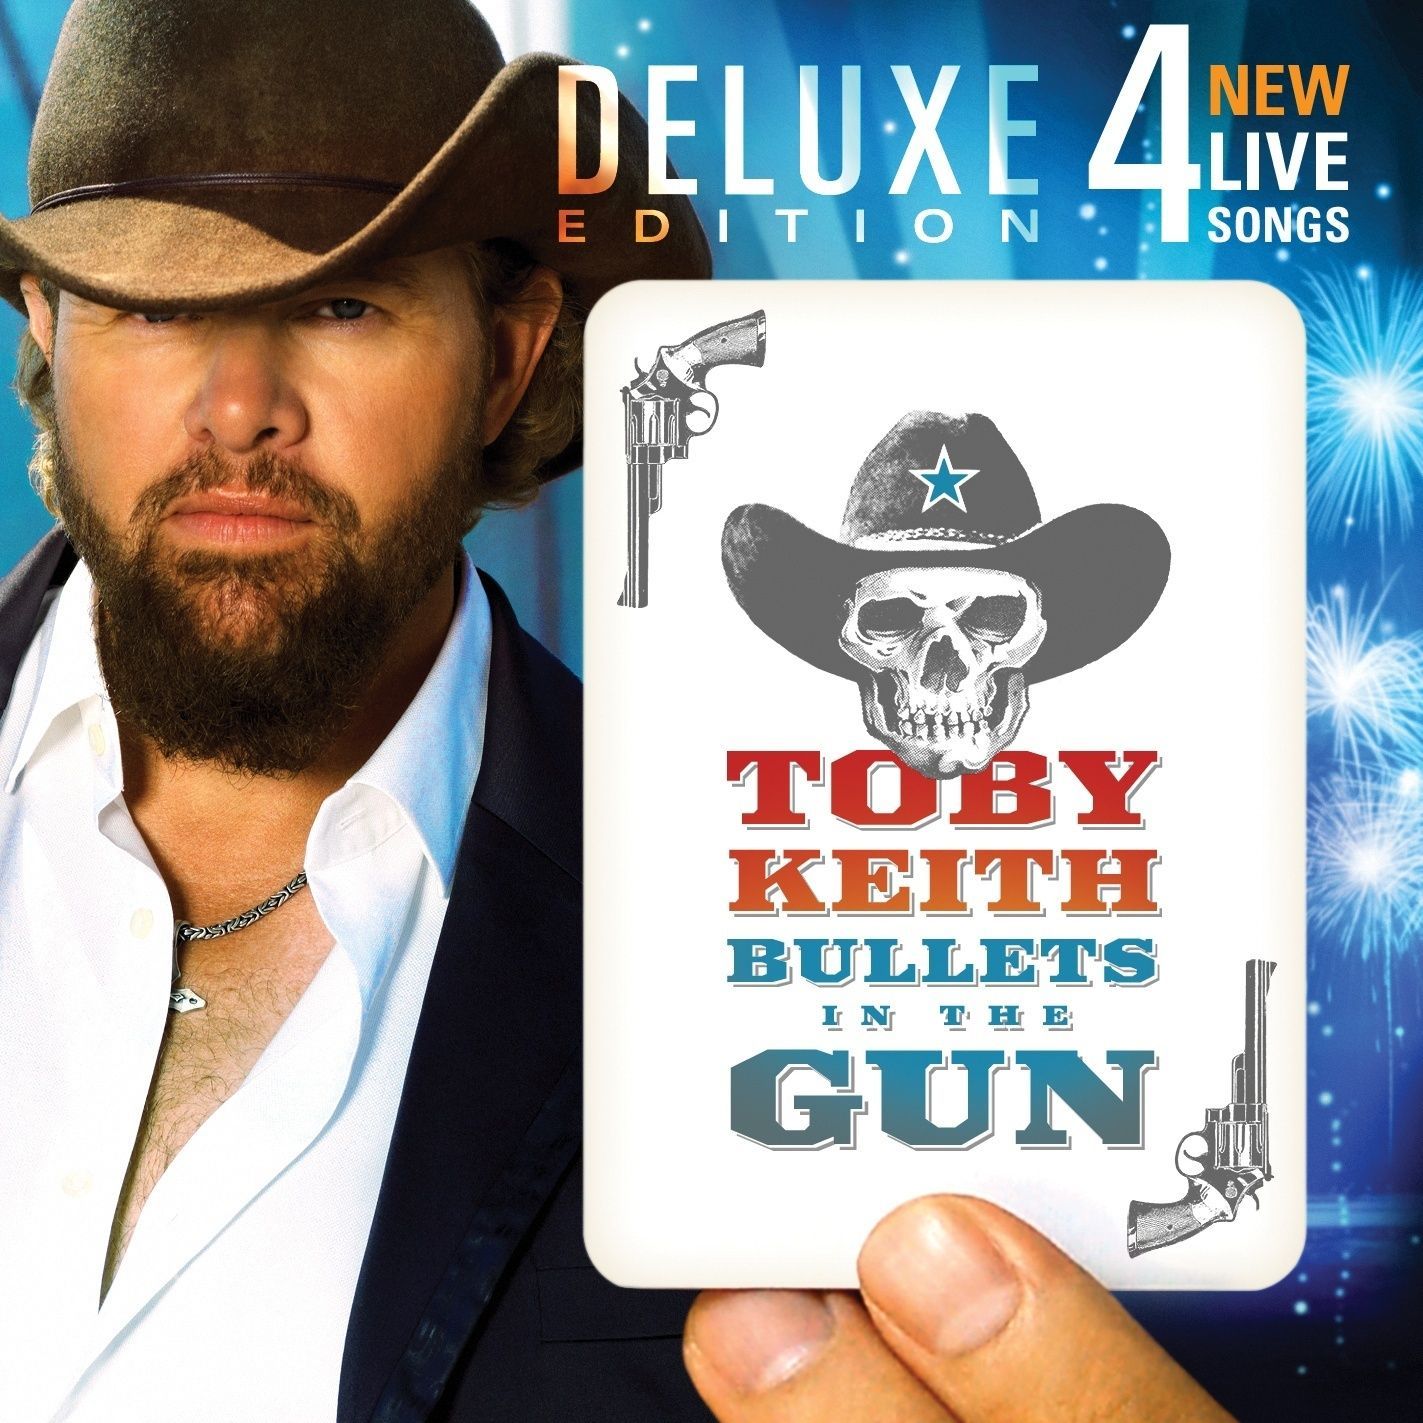 Pin By Stein Erik On Toby Kieth With Images Songs New Edition Songs Keith